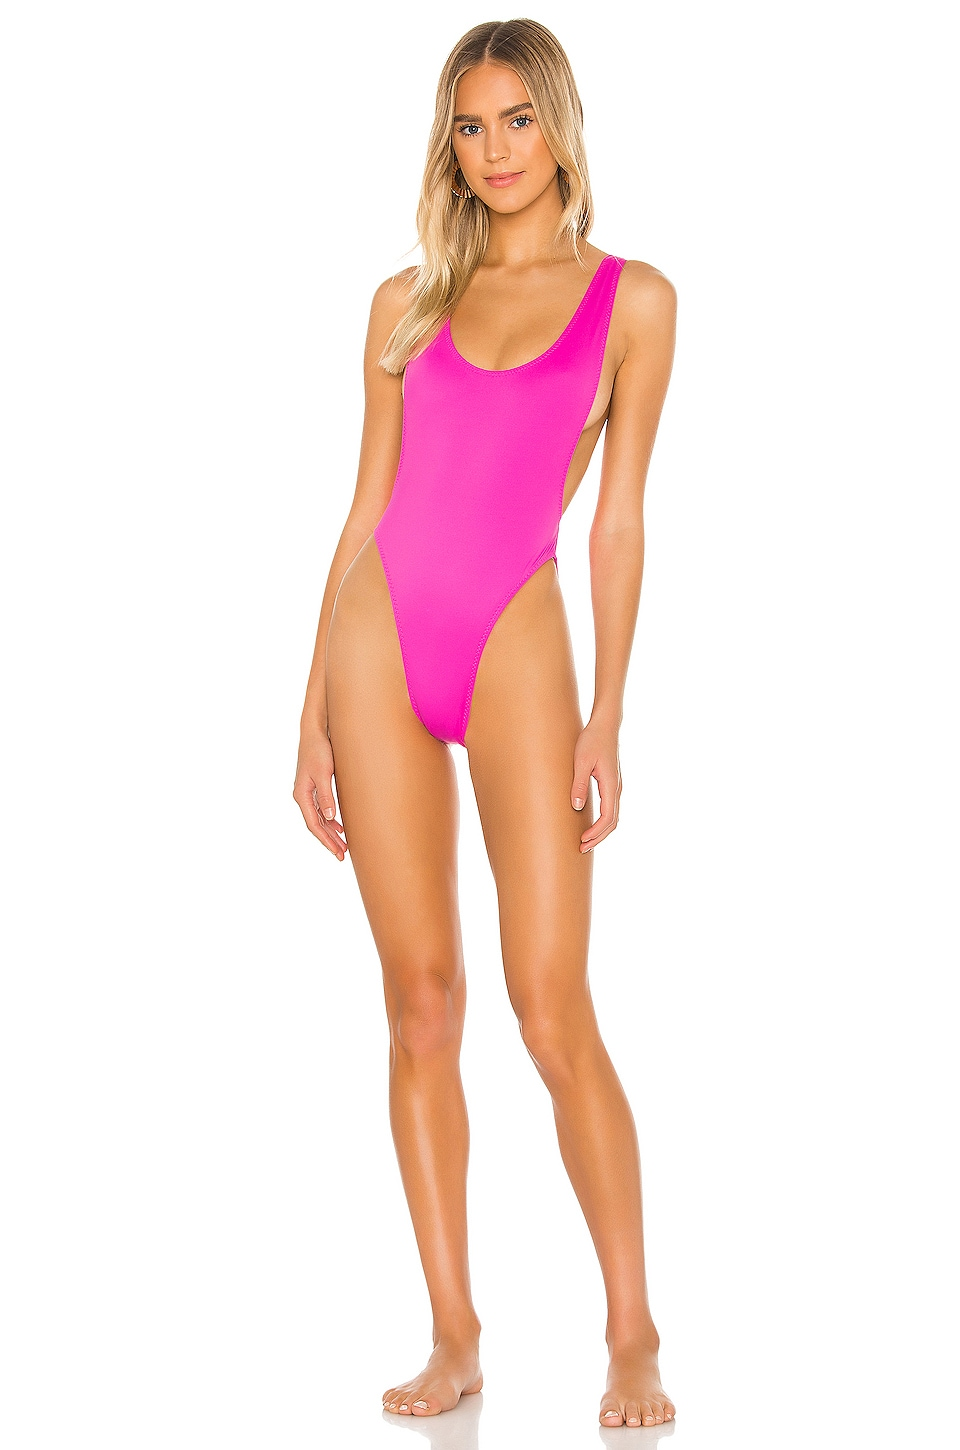 Norma Kamali X REVOVLE Marissa One Piece in Orchid Pink